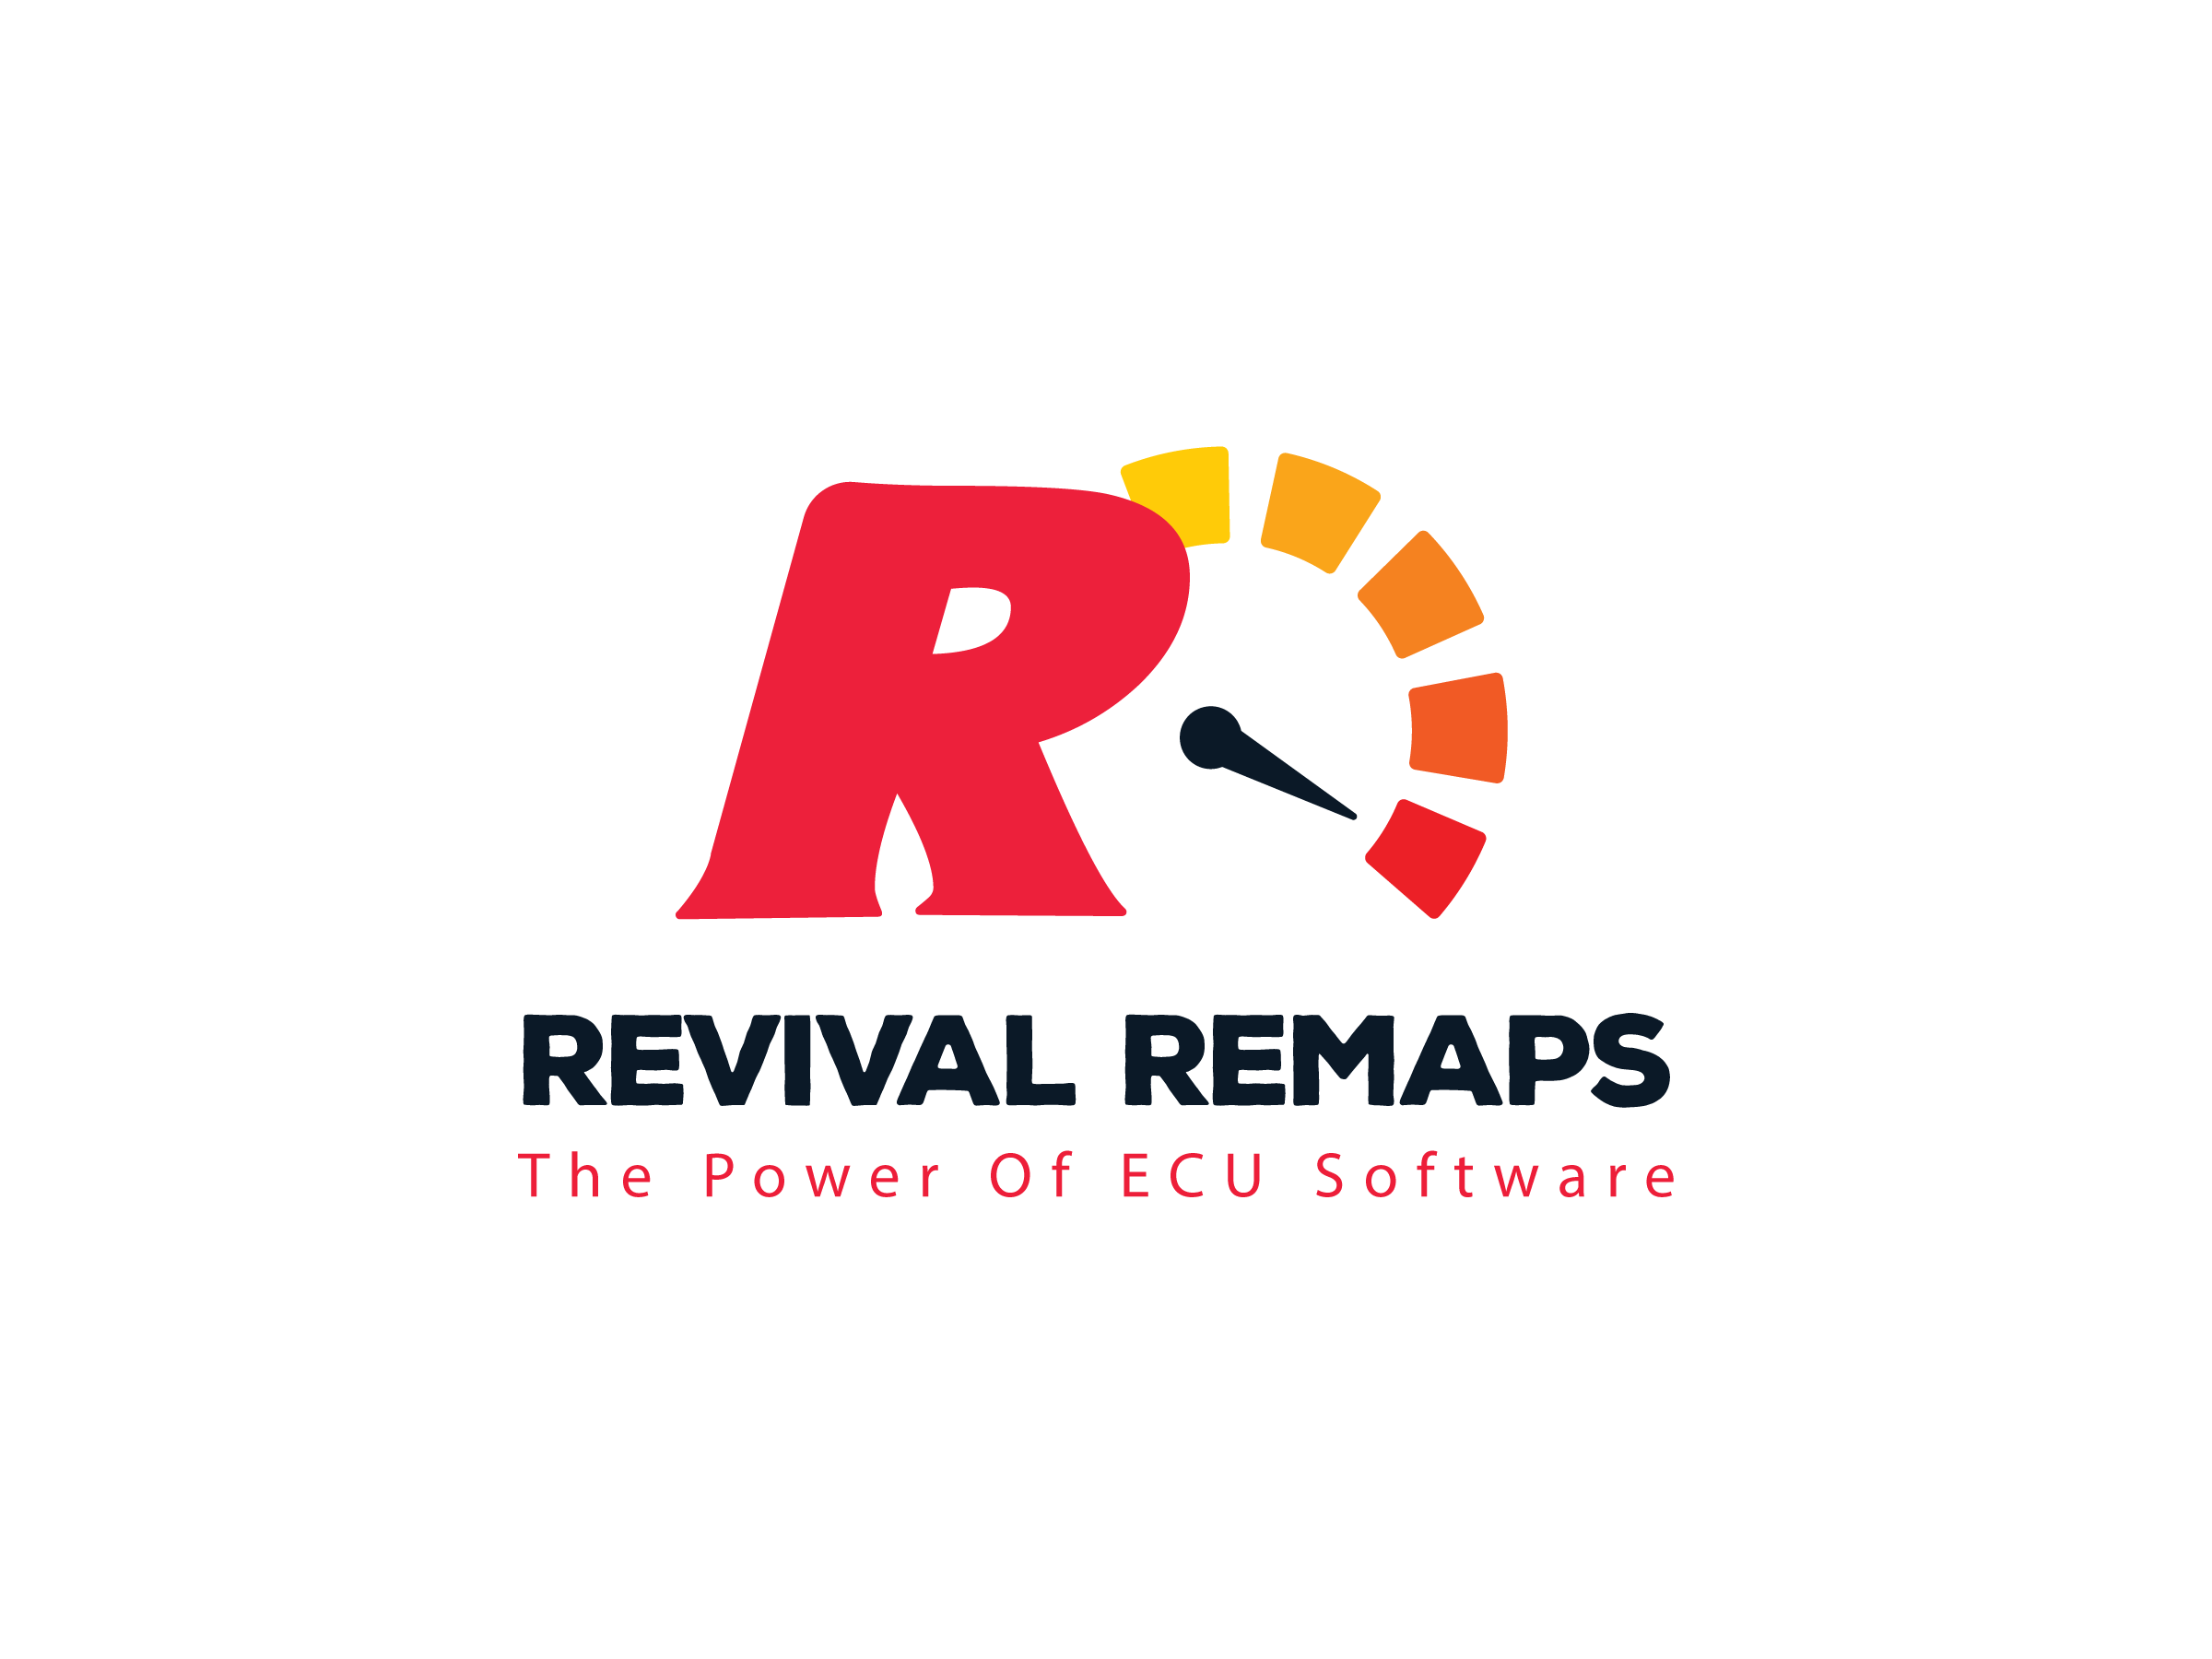 Revival Remaps